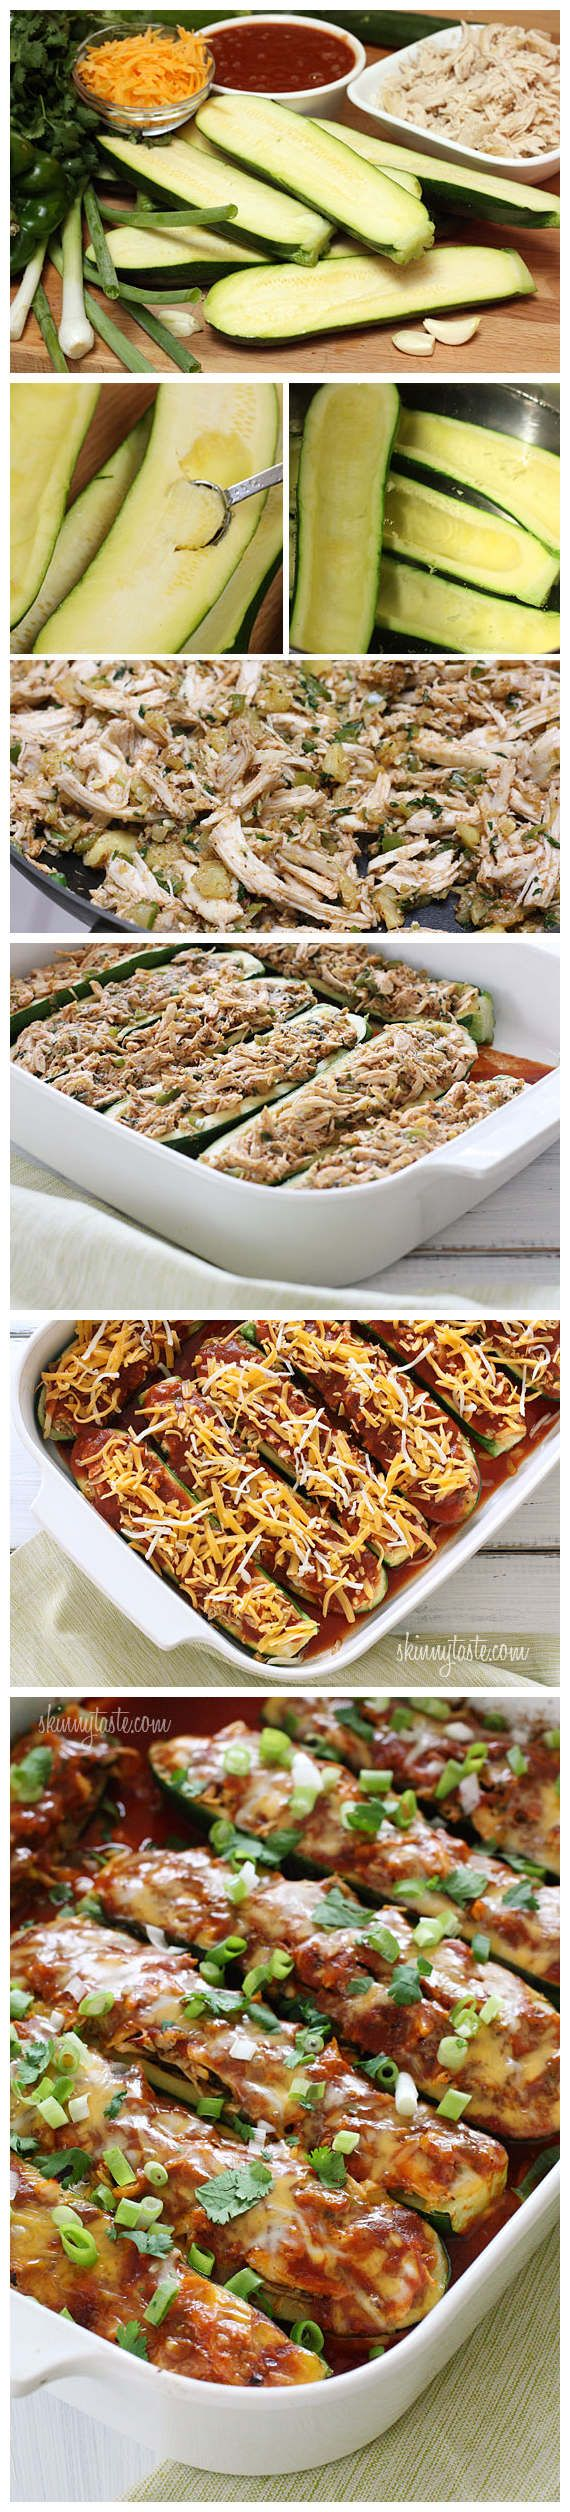 Chicken Enchilada Stuffed Zucchini Boats | Mmmmm.... Good | Pinterest